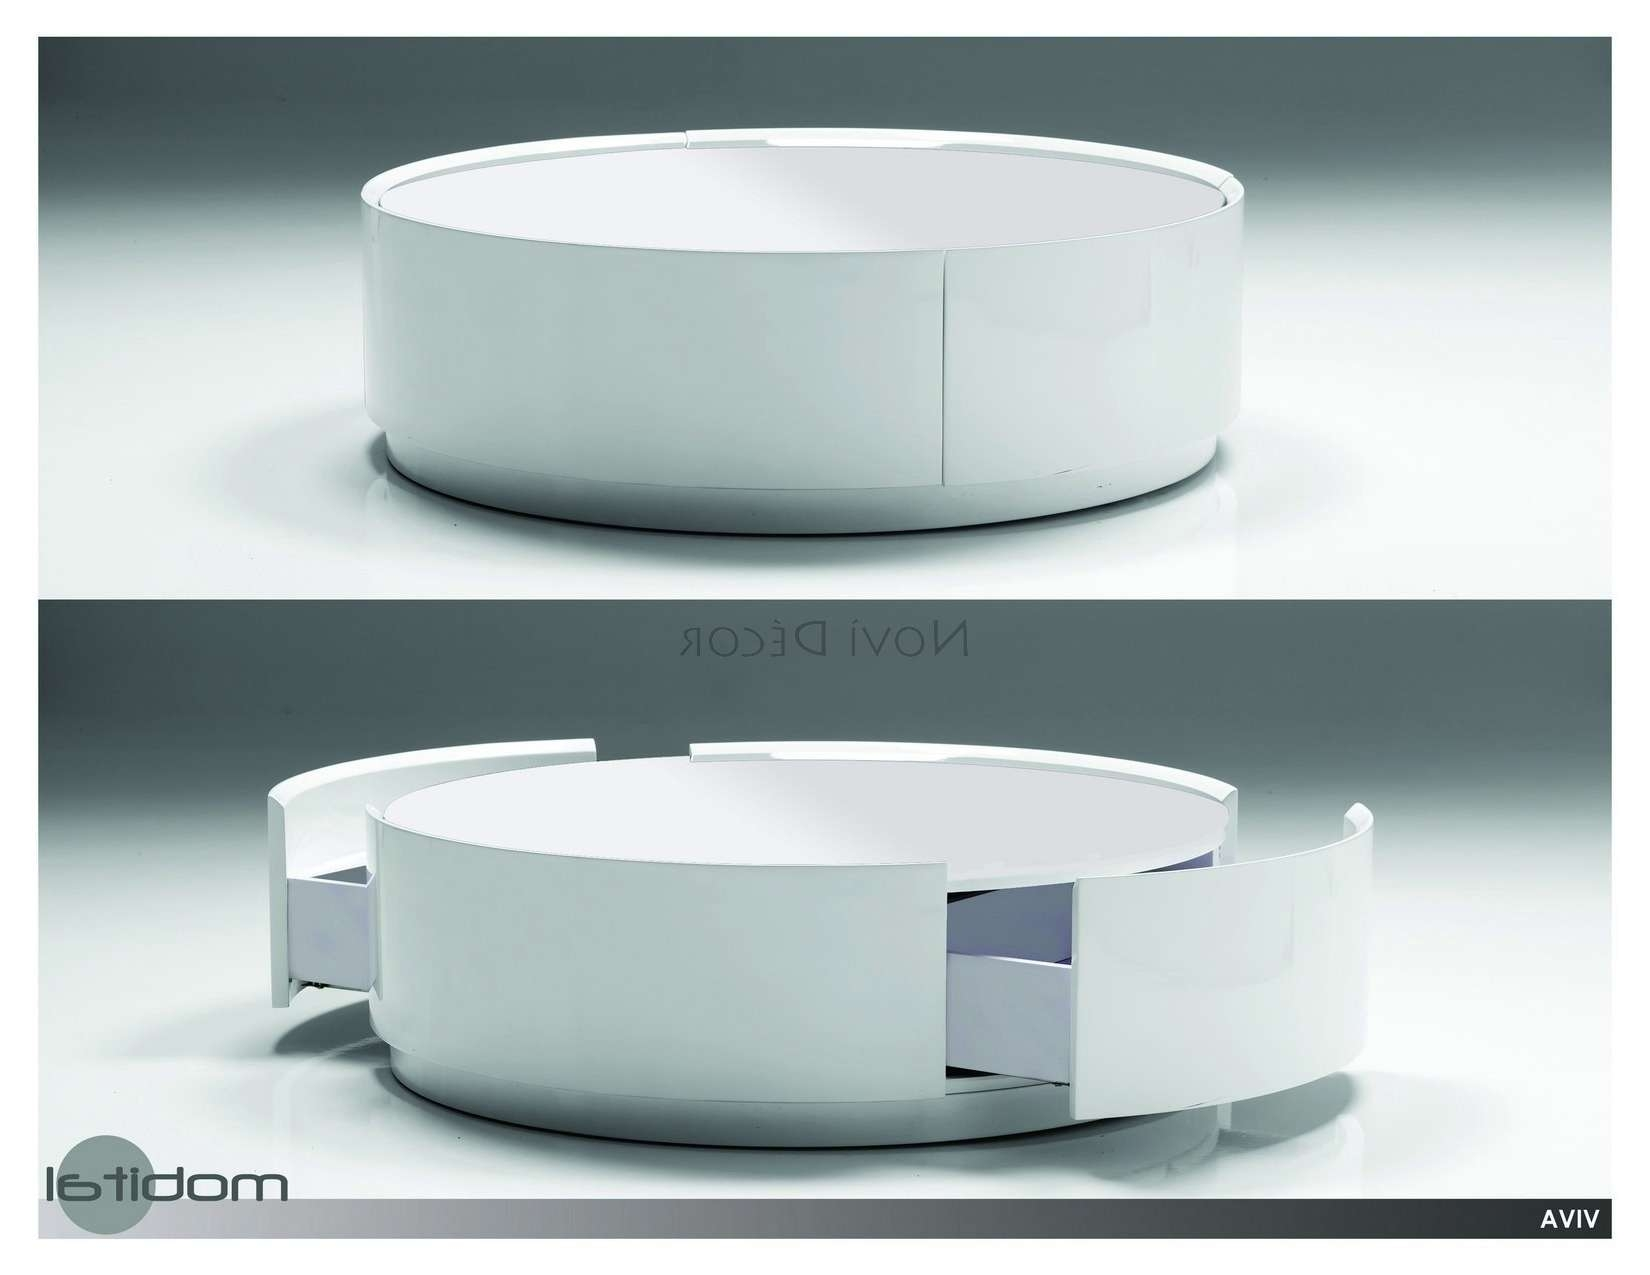 Amazing Round Coffee Tables With Storage Pics Ideas – Tikspor For Most Popular Circular Coffee Tables With Storage (View 3 of 20)